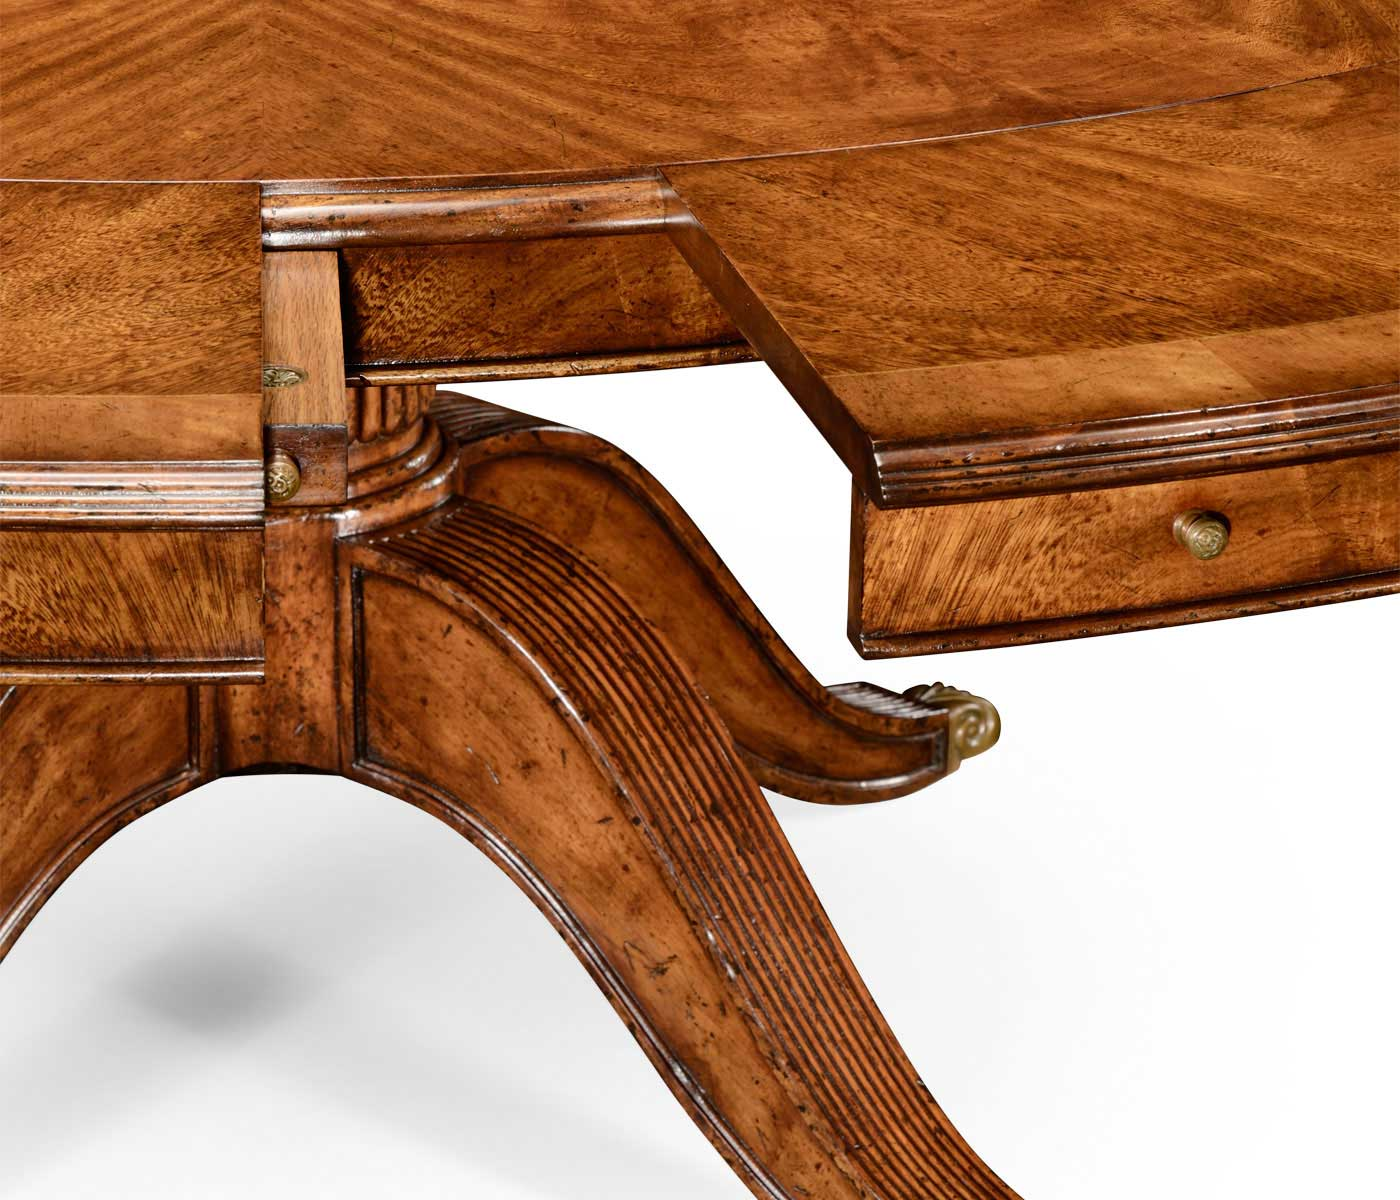 66 Quot Walnut Extending Circular Dining Table With Storage